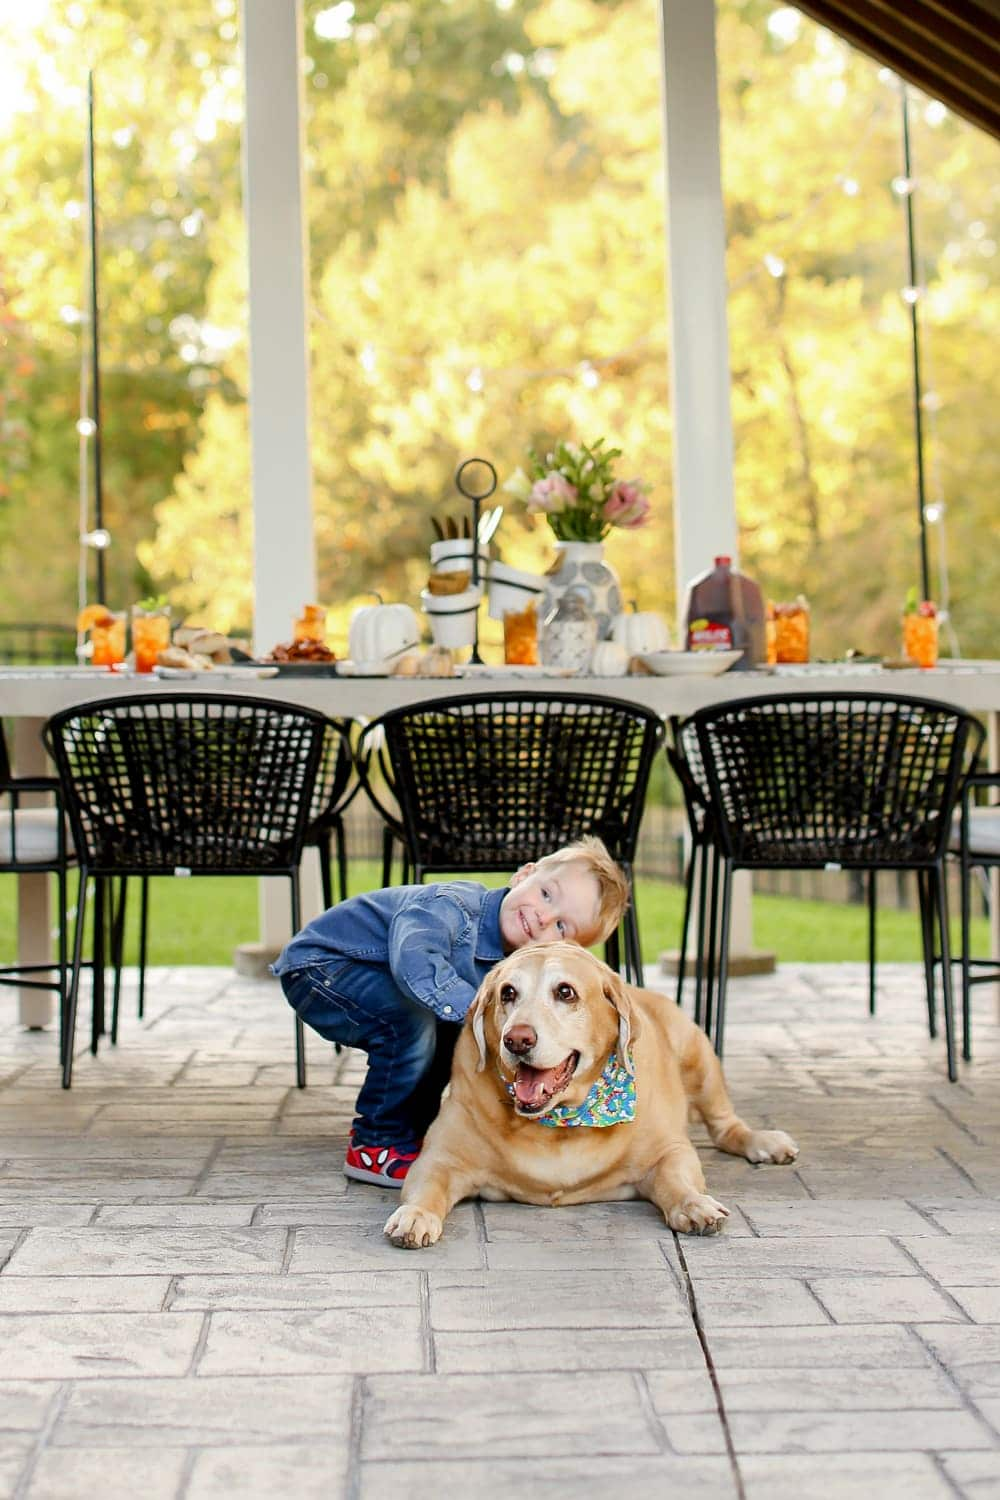 A toddler boy hugging a yellow labrador retriever with a table behind them.